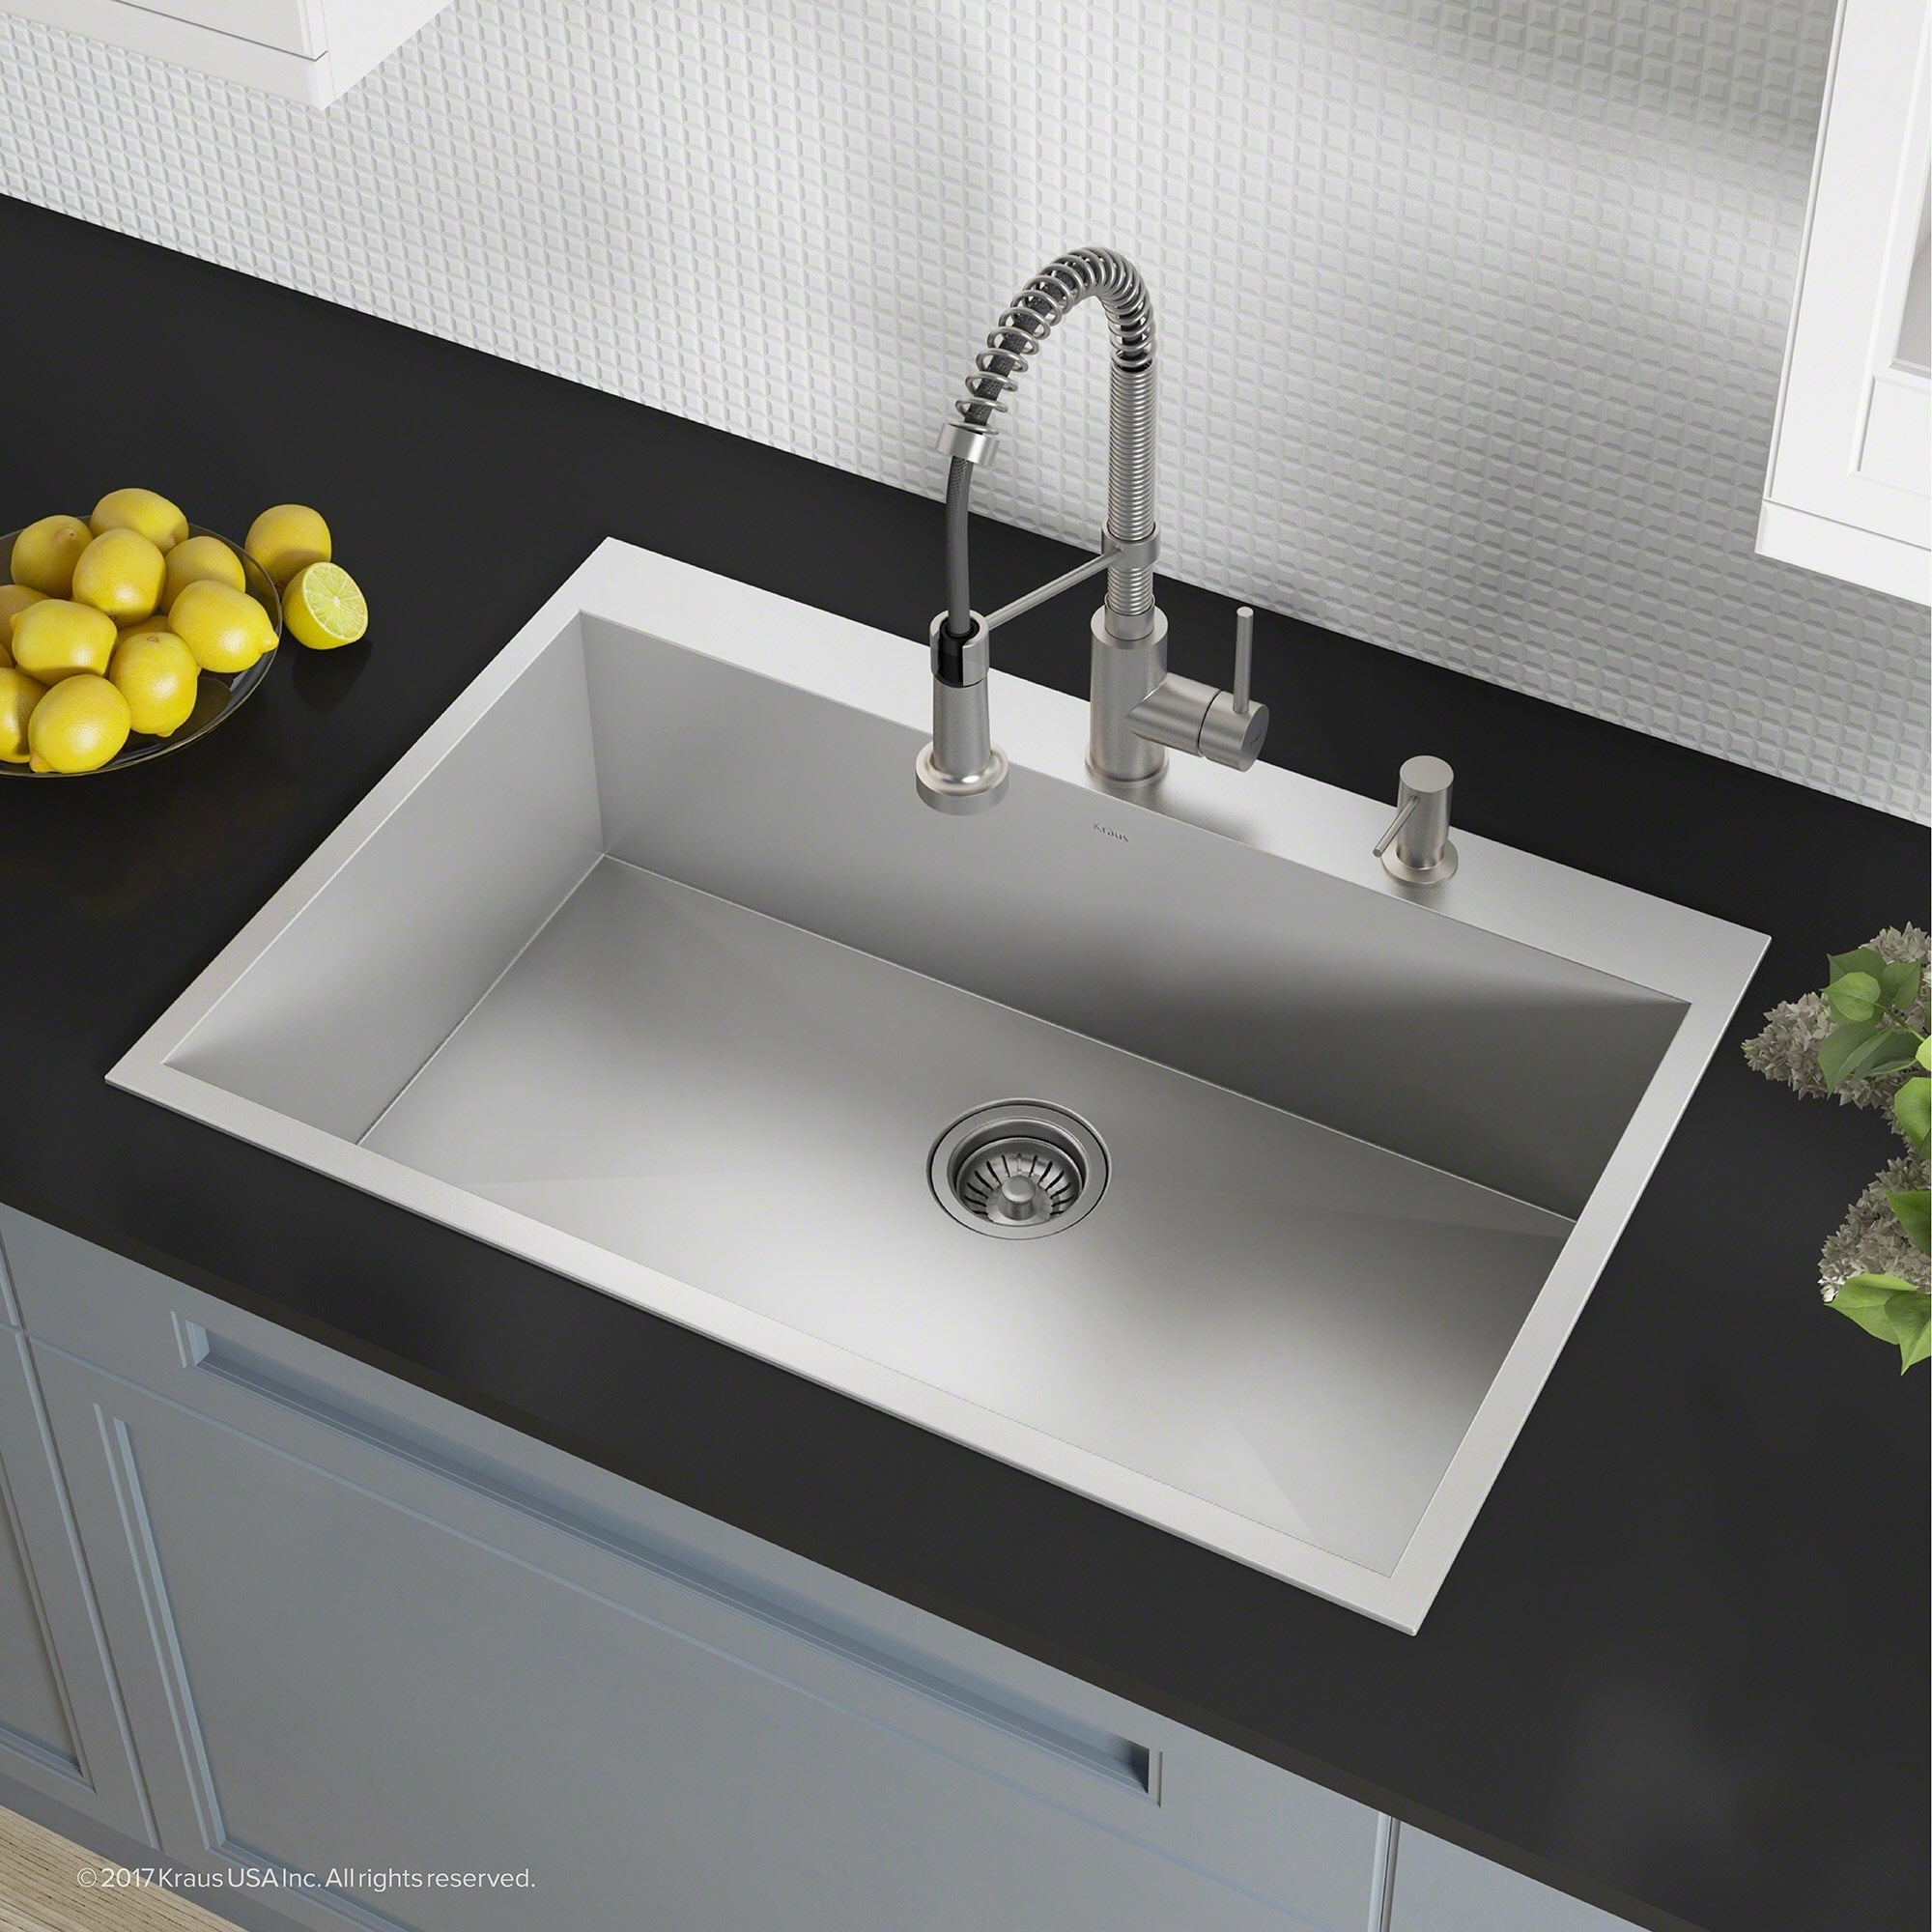 Groovy Kraus Kp1Ts33S 2 Pax 33 Inch Drop In Stainless Steel Kitchen Sink Complete Home Design Collection Lindsey Bellcom